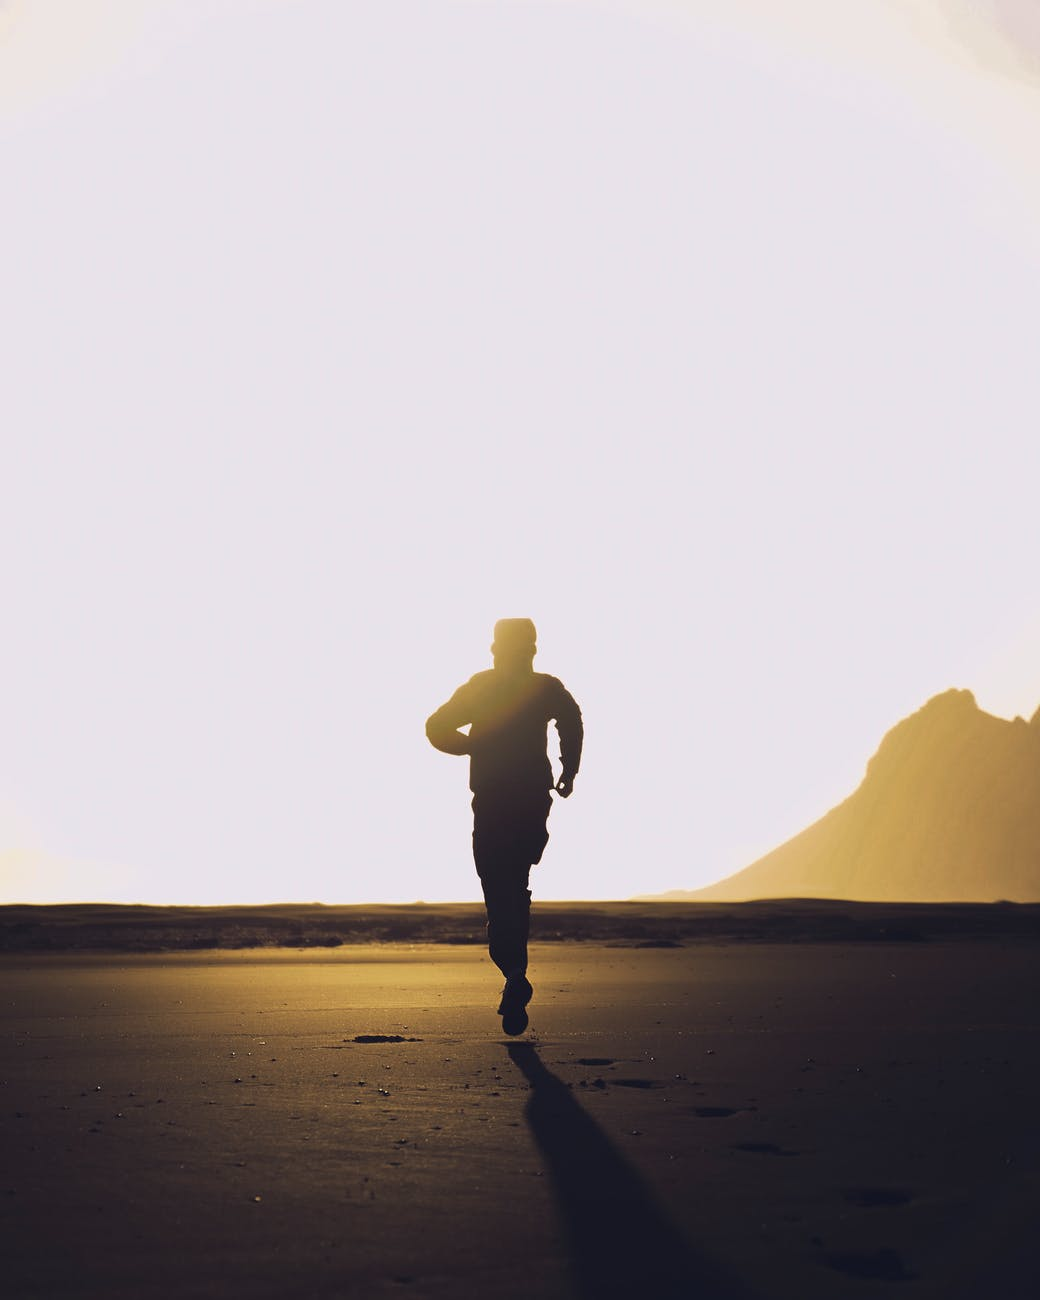 silhouette of unrecognizable man running on sand at sunset